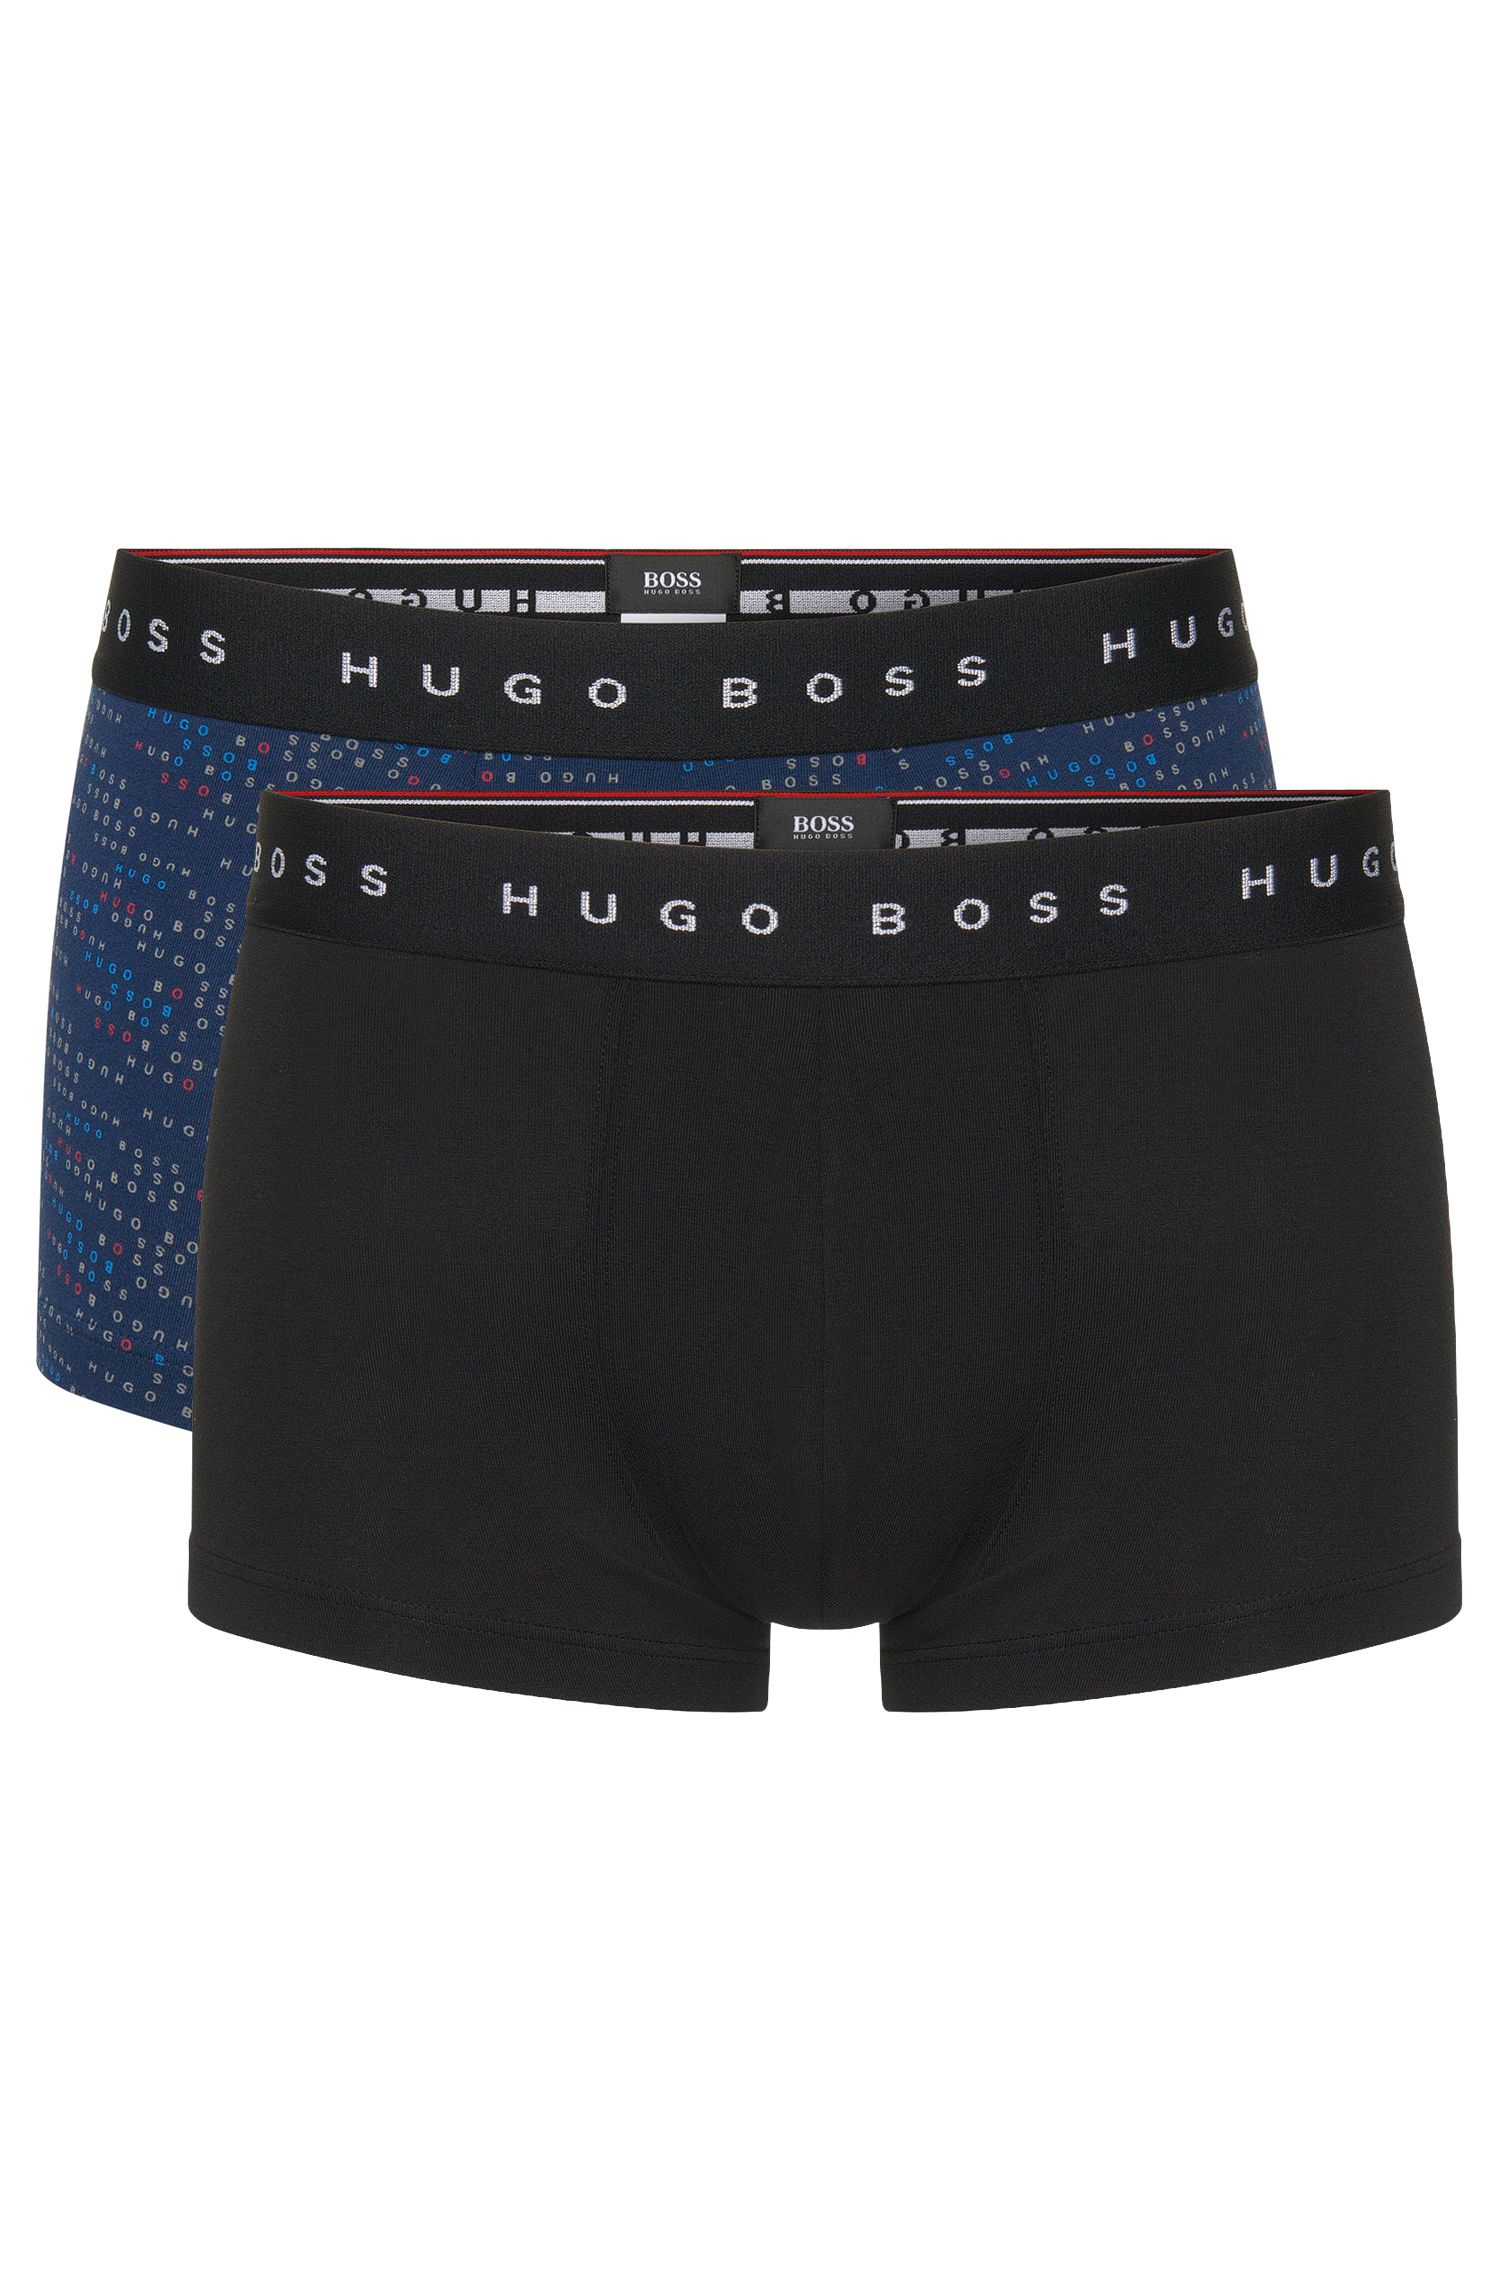 'Boxer 2P FN Print' | Stretch Cotton Trunk, 2-Pack